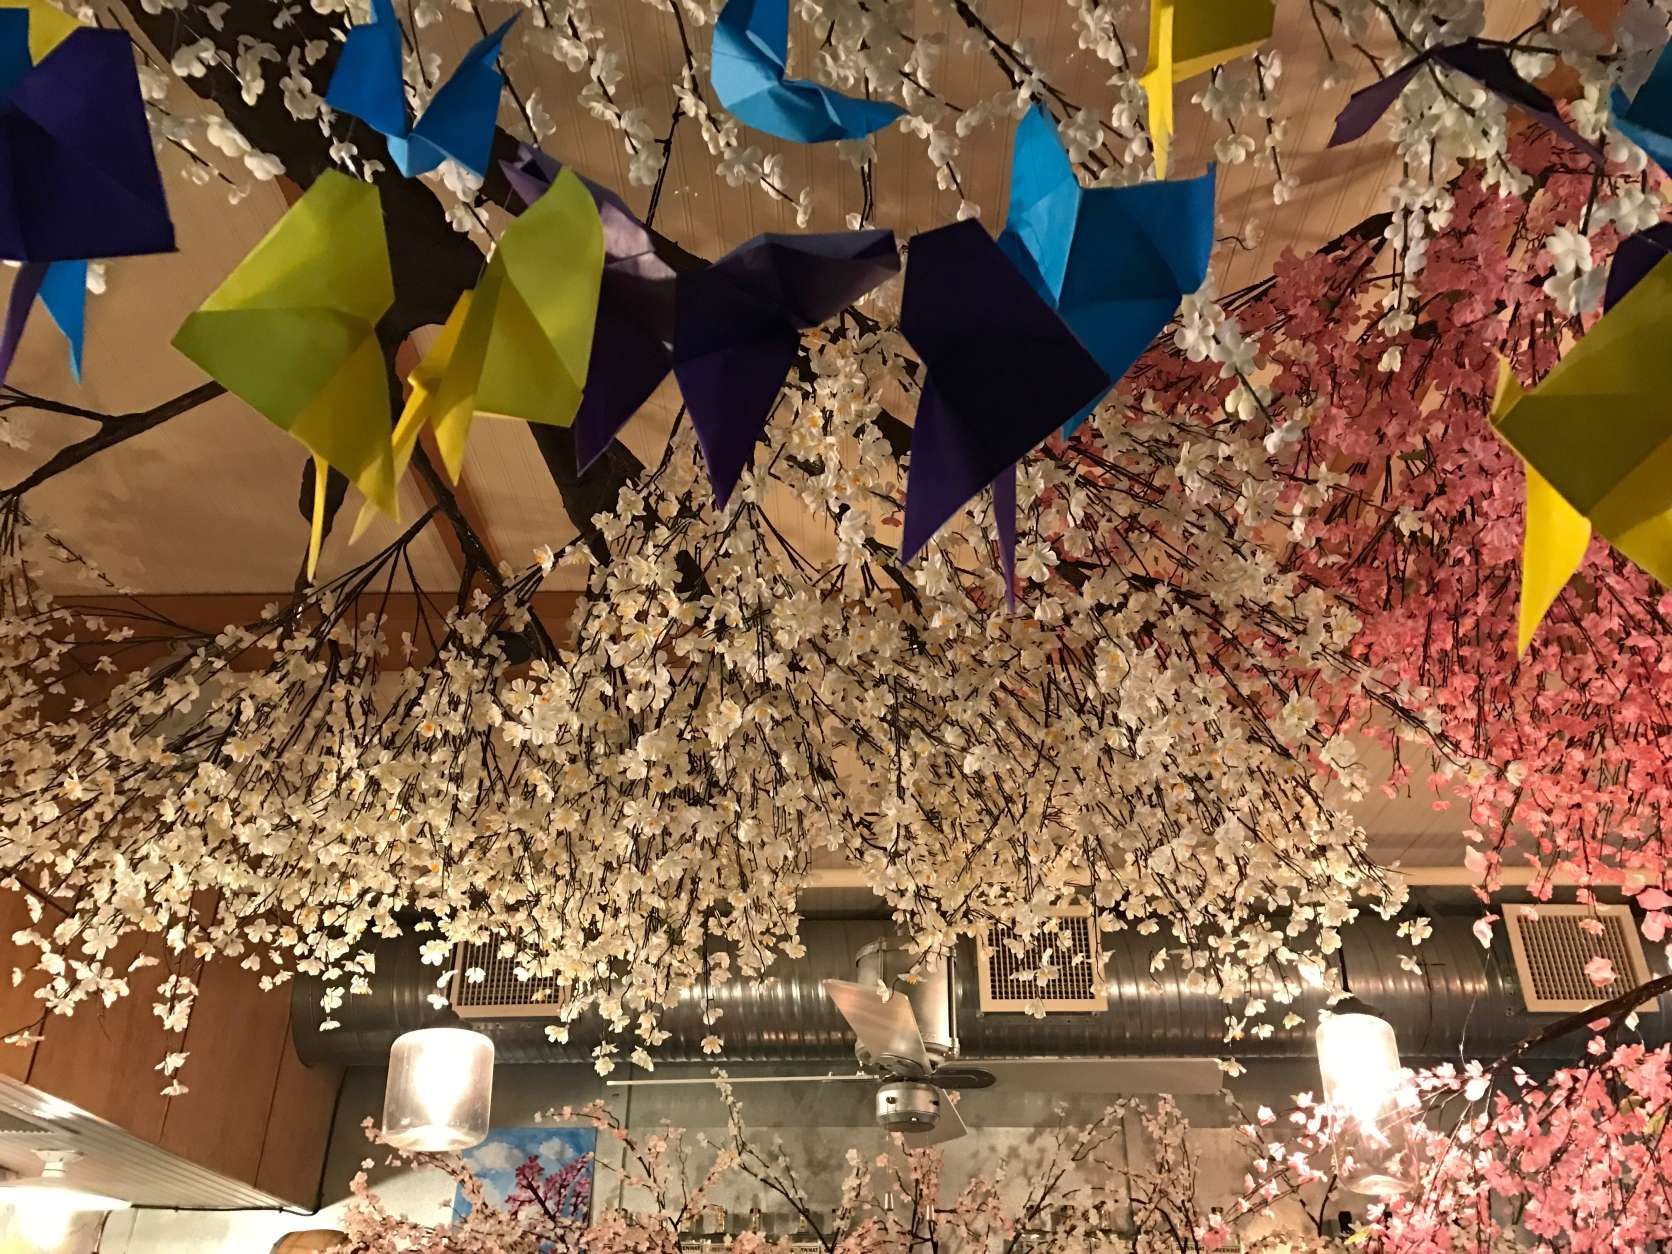 The blooms hanging above the Cherry Blossom pop up bar are also woven between the spirits behind the bar. (WTOP/Megan Cloherty)